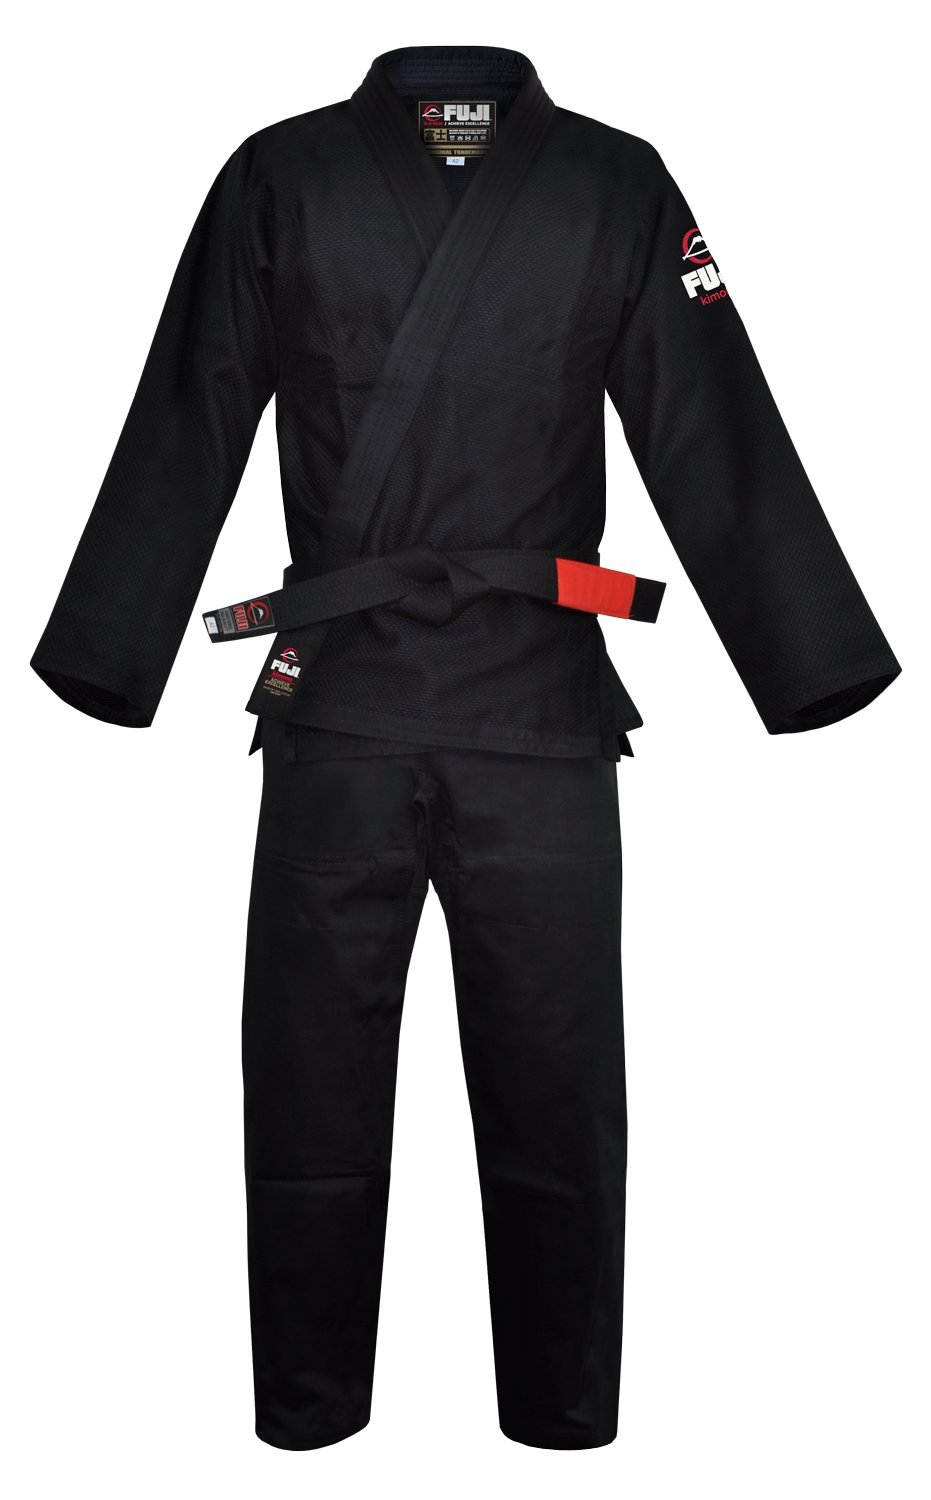 Childrens sports suits: a review, models, manufacturers and reviews